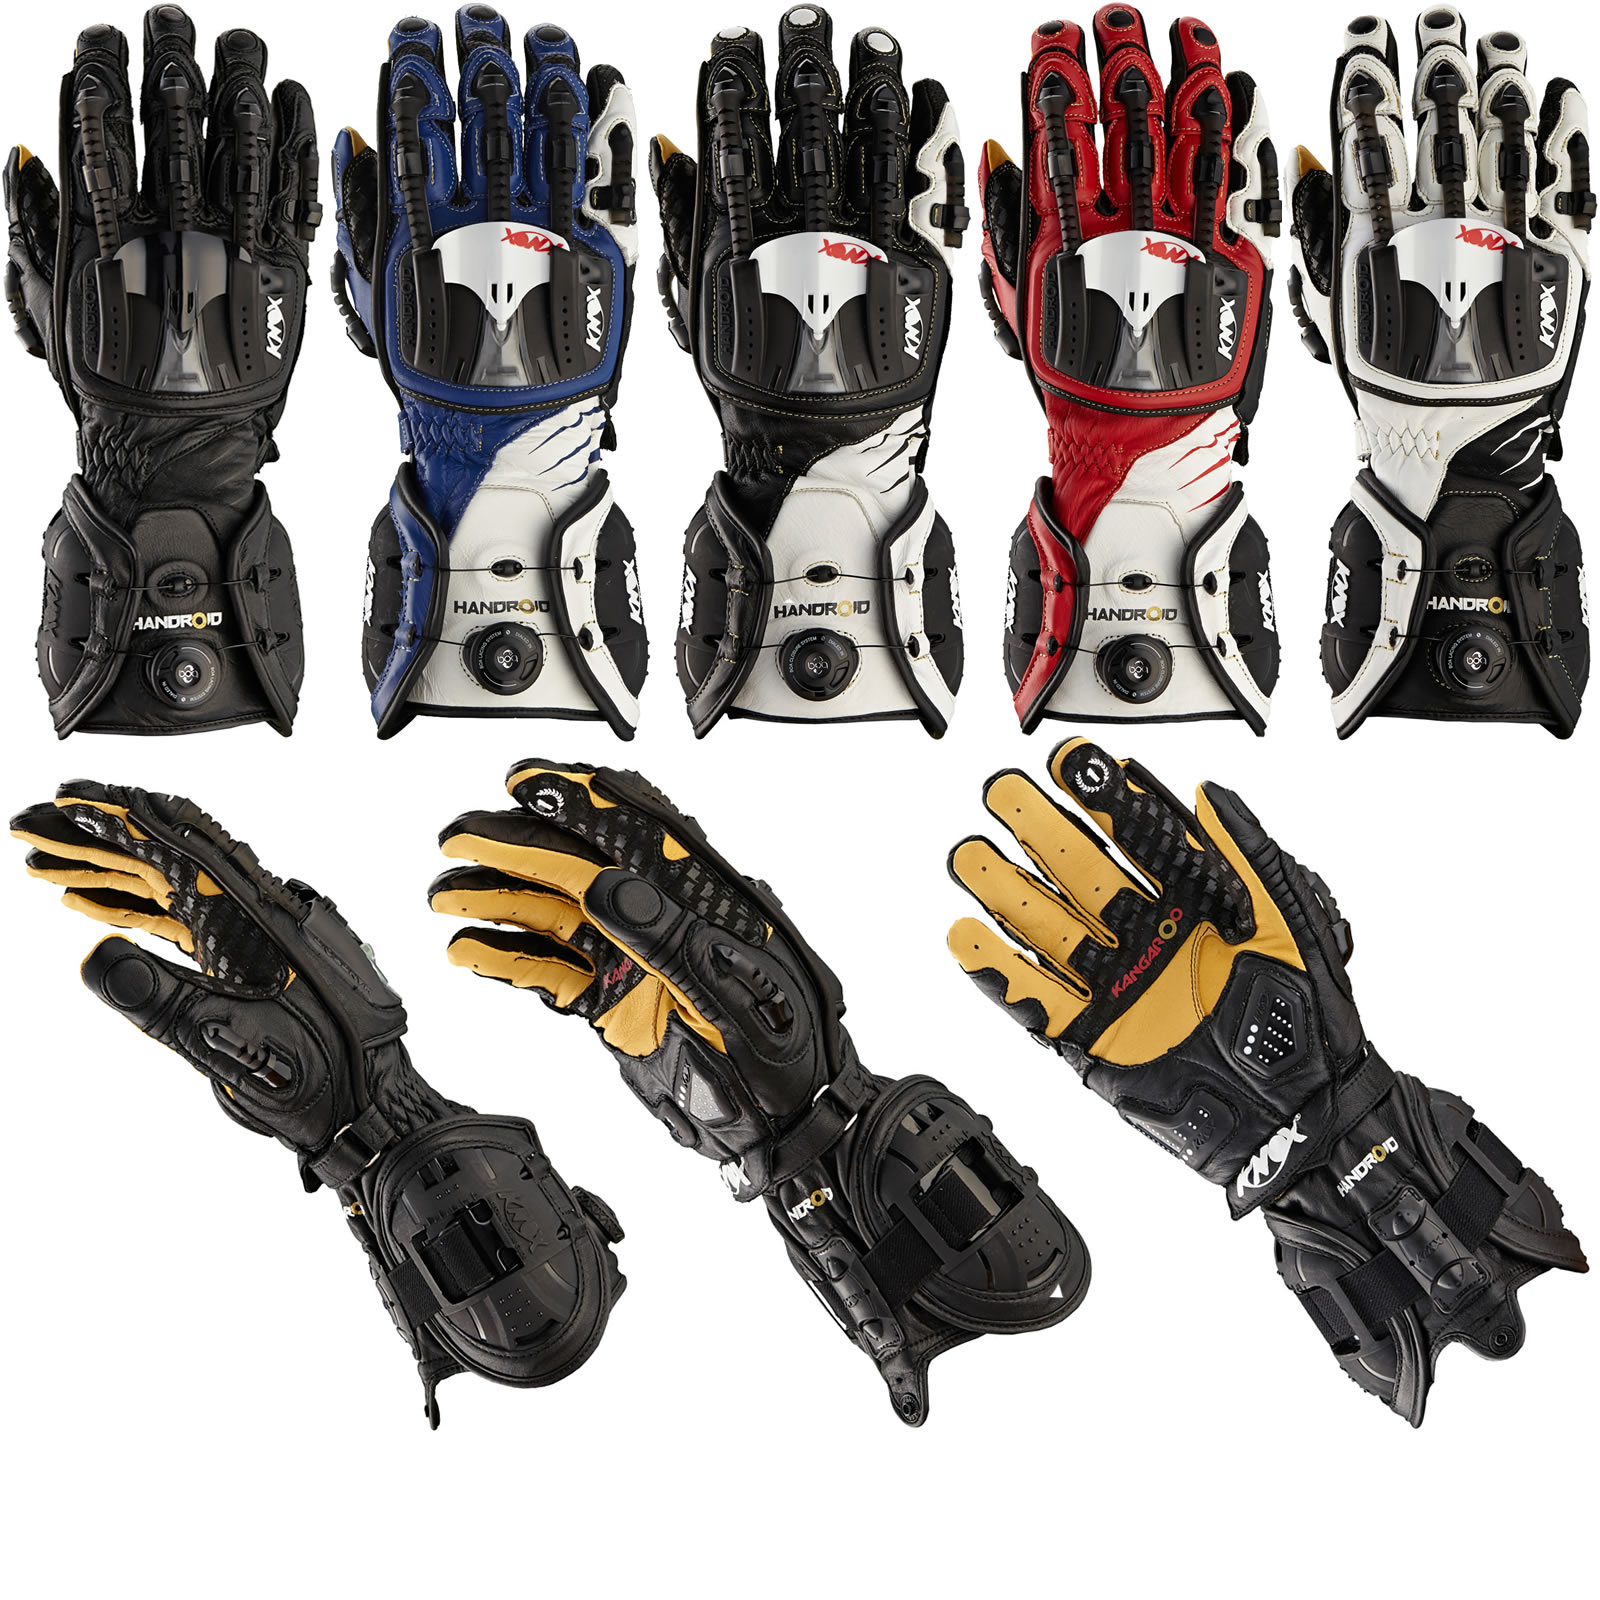 Motorcycle gloves ce approved - Knox Handroid Ce Approved Motorcycle Gloves